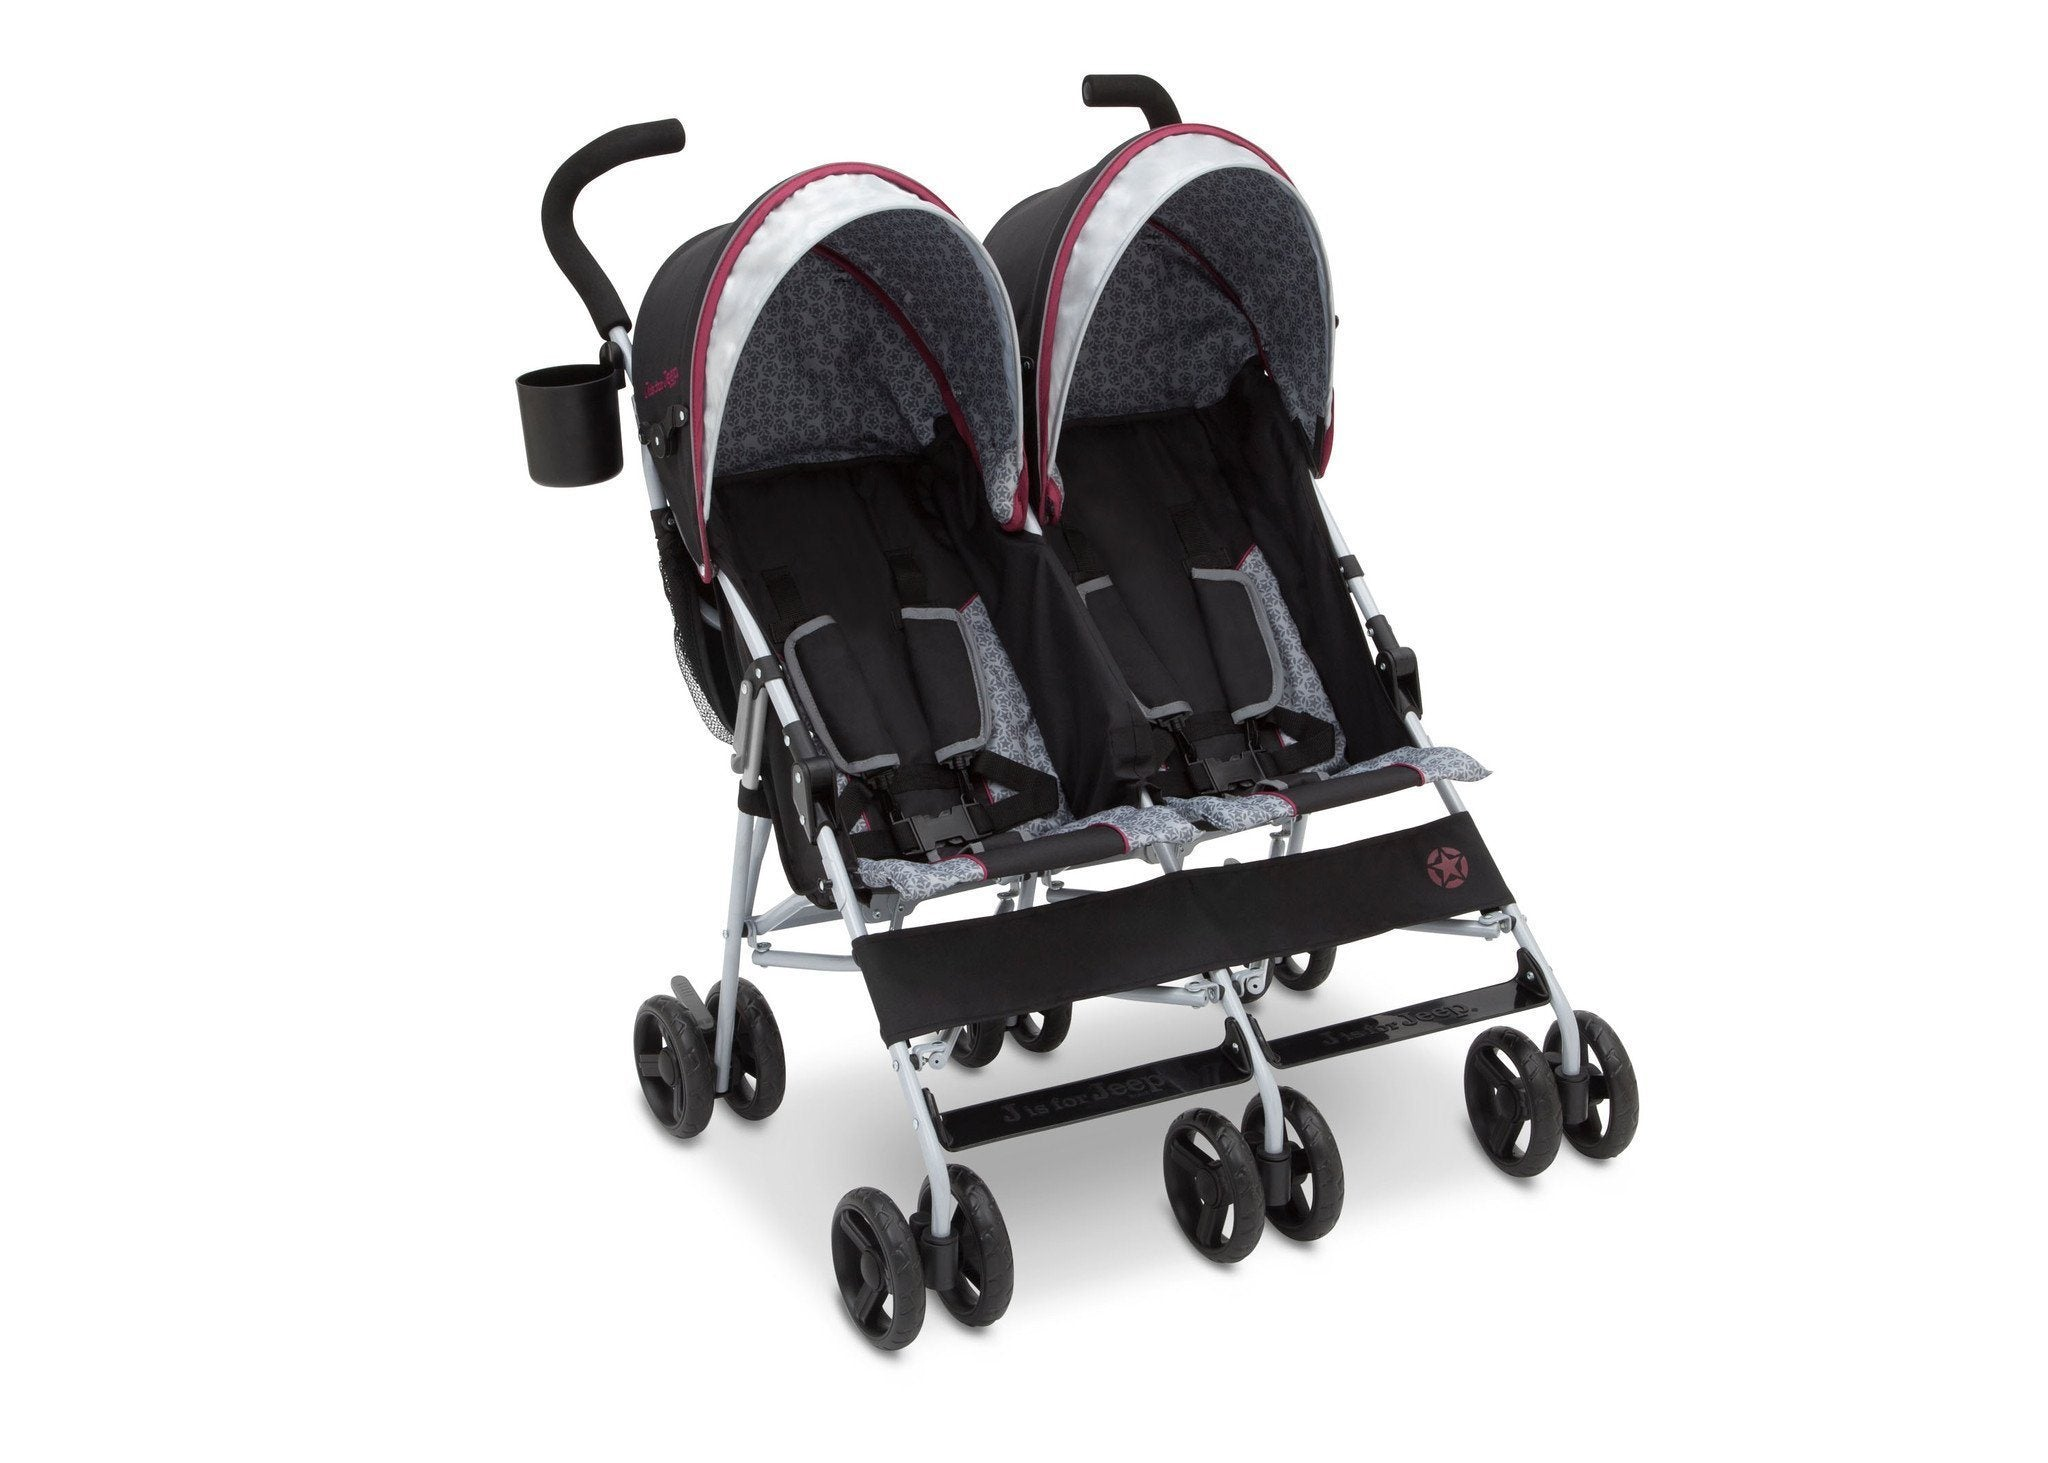 Jeep Brand Scout Double Stroller by Delta Children, Lunar Burgundy (0981), with multi-position reclining seat